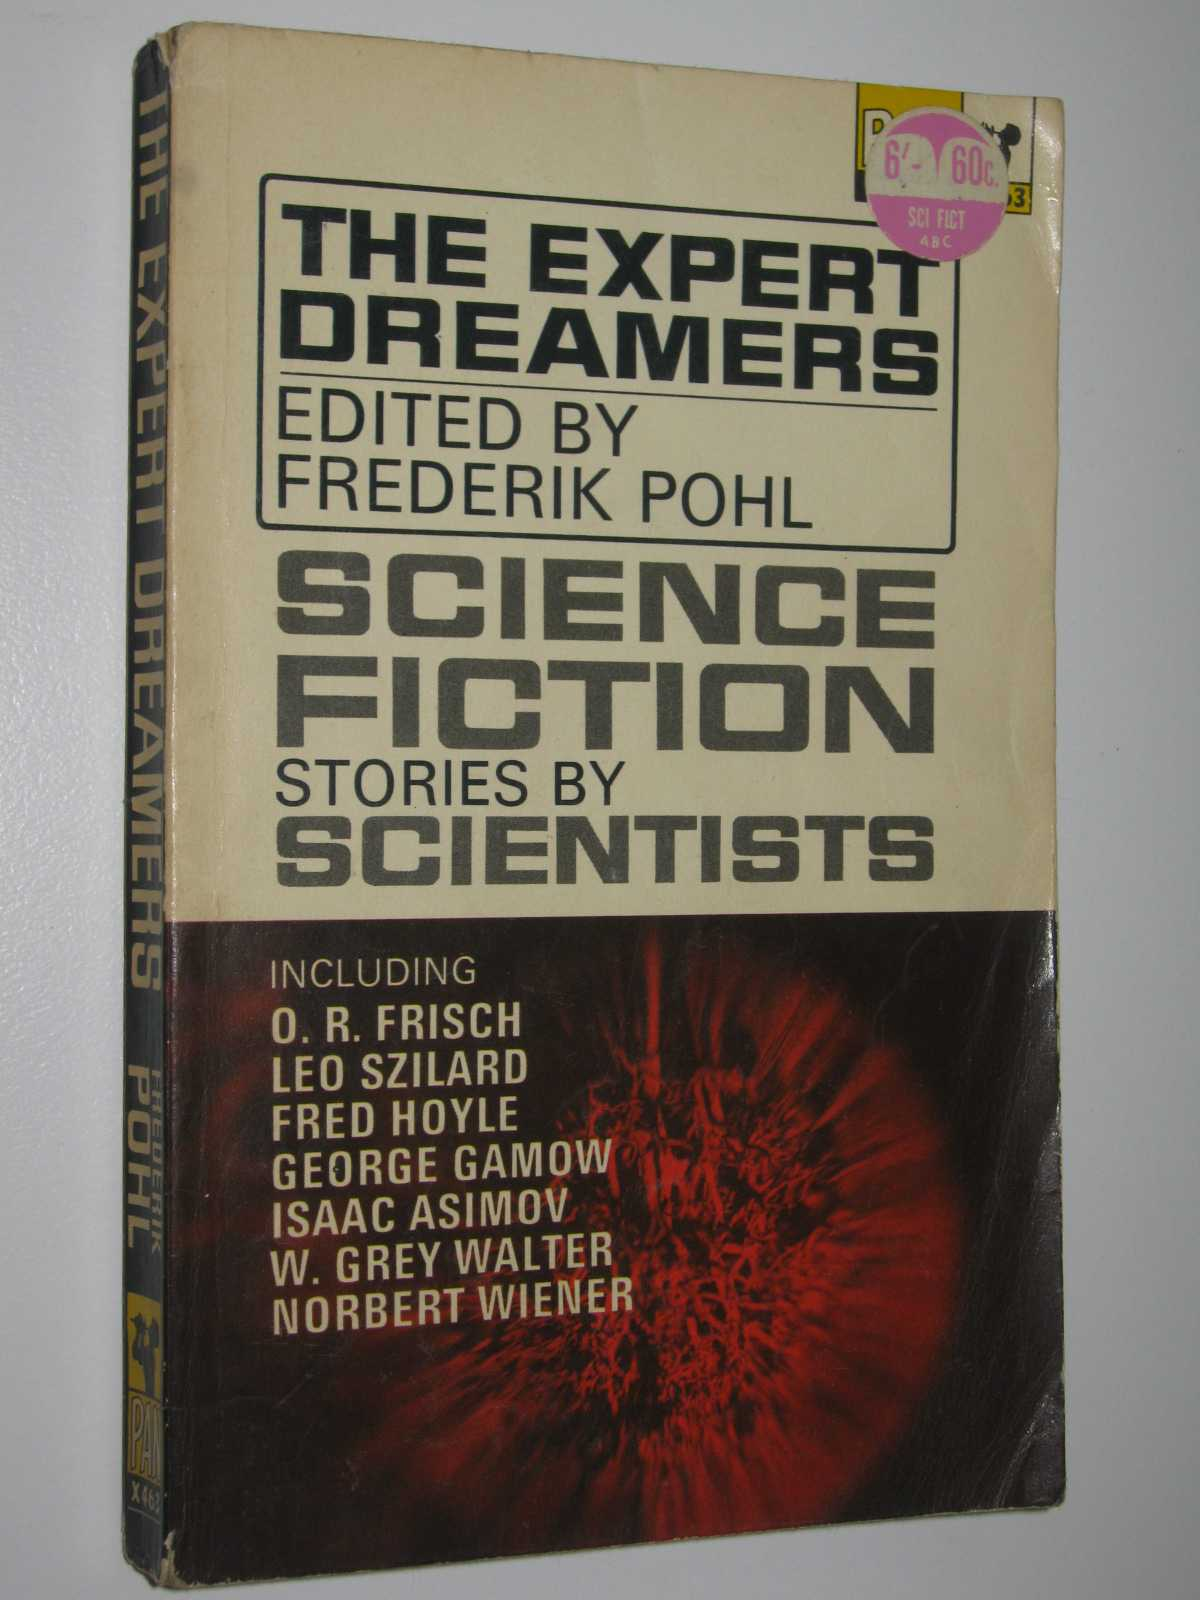 The Expert Dreamers : Science fiction Stories by Scientists, Pohl, Frederick (edited)